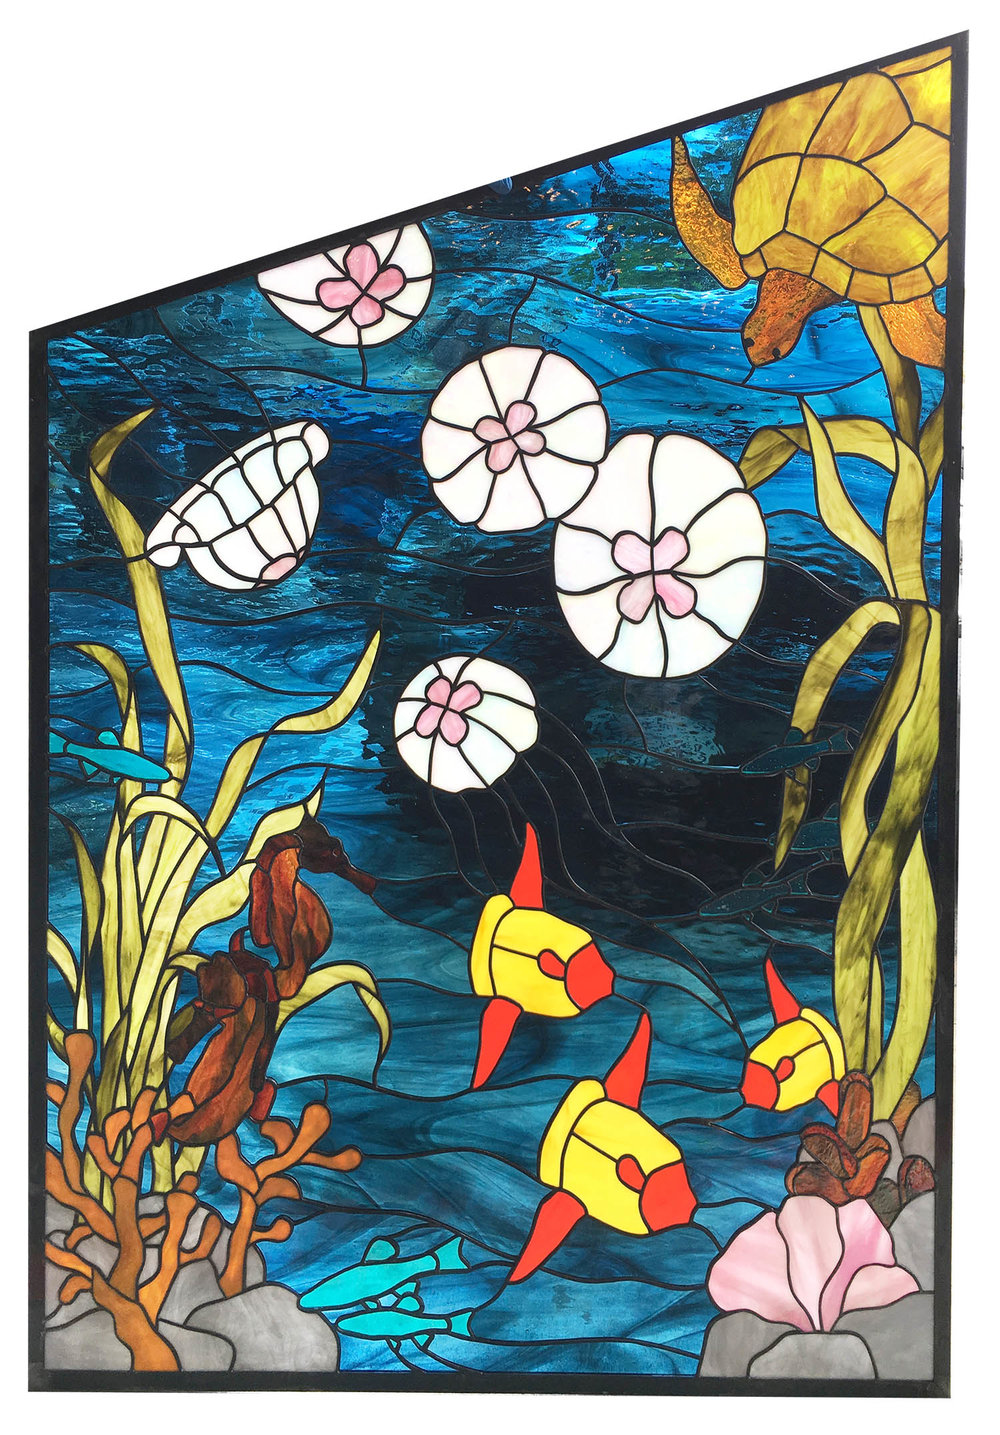 sea life ocean scene jellyfish seahorse sea turle underwater leaded glass stained glass studio palo alto atherton california san francisco san jose legacy glass.jpg